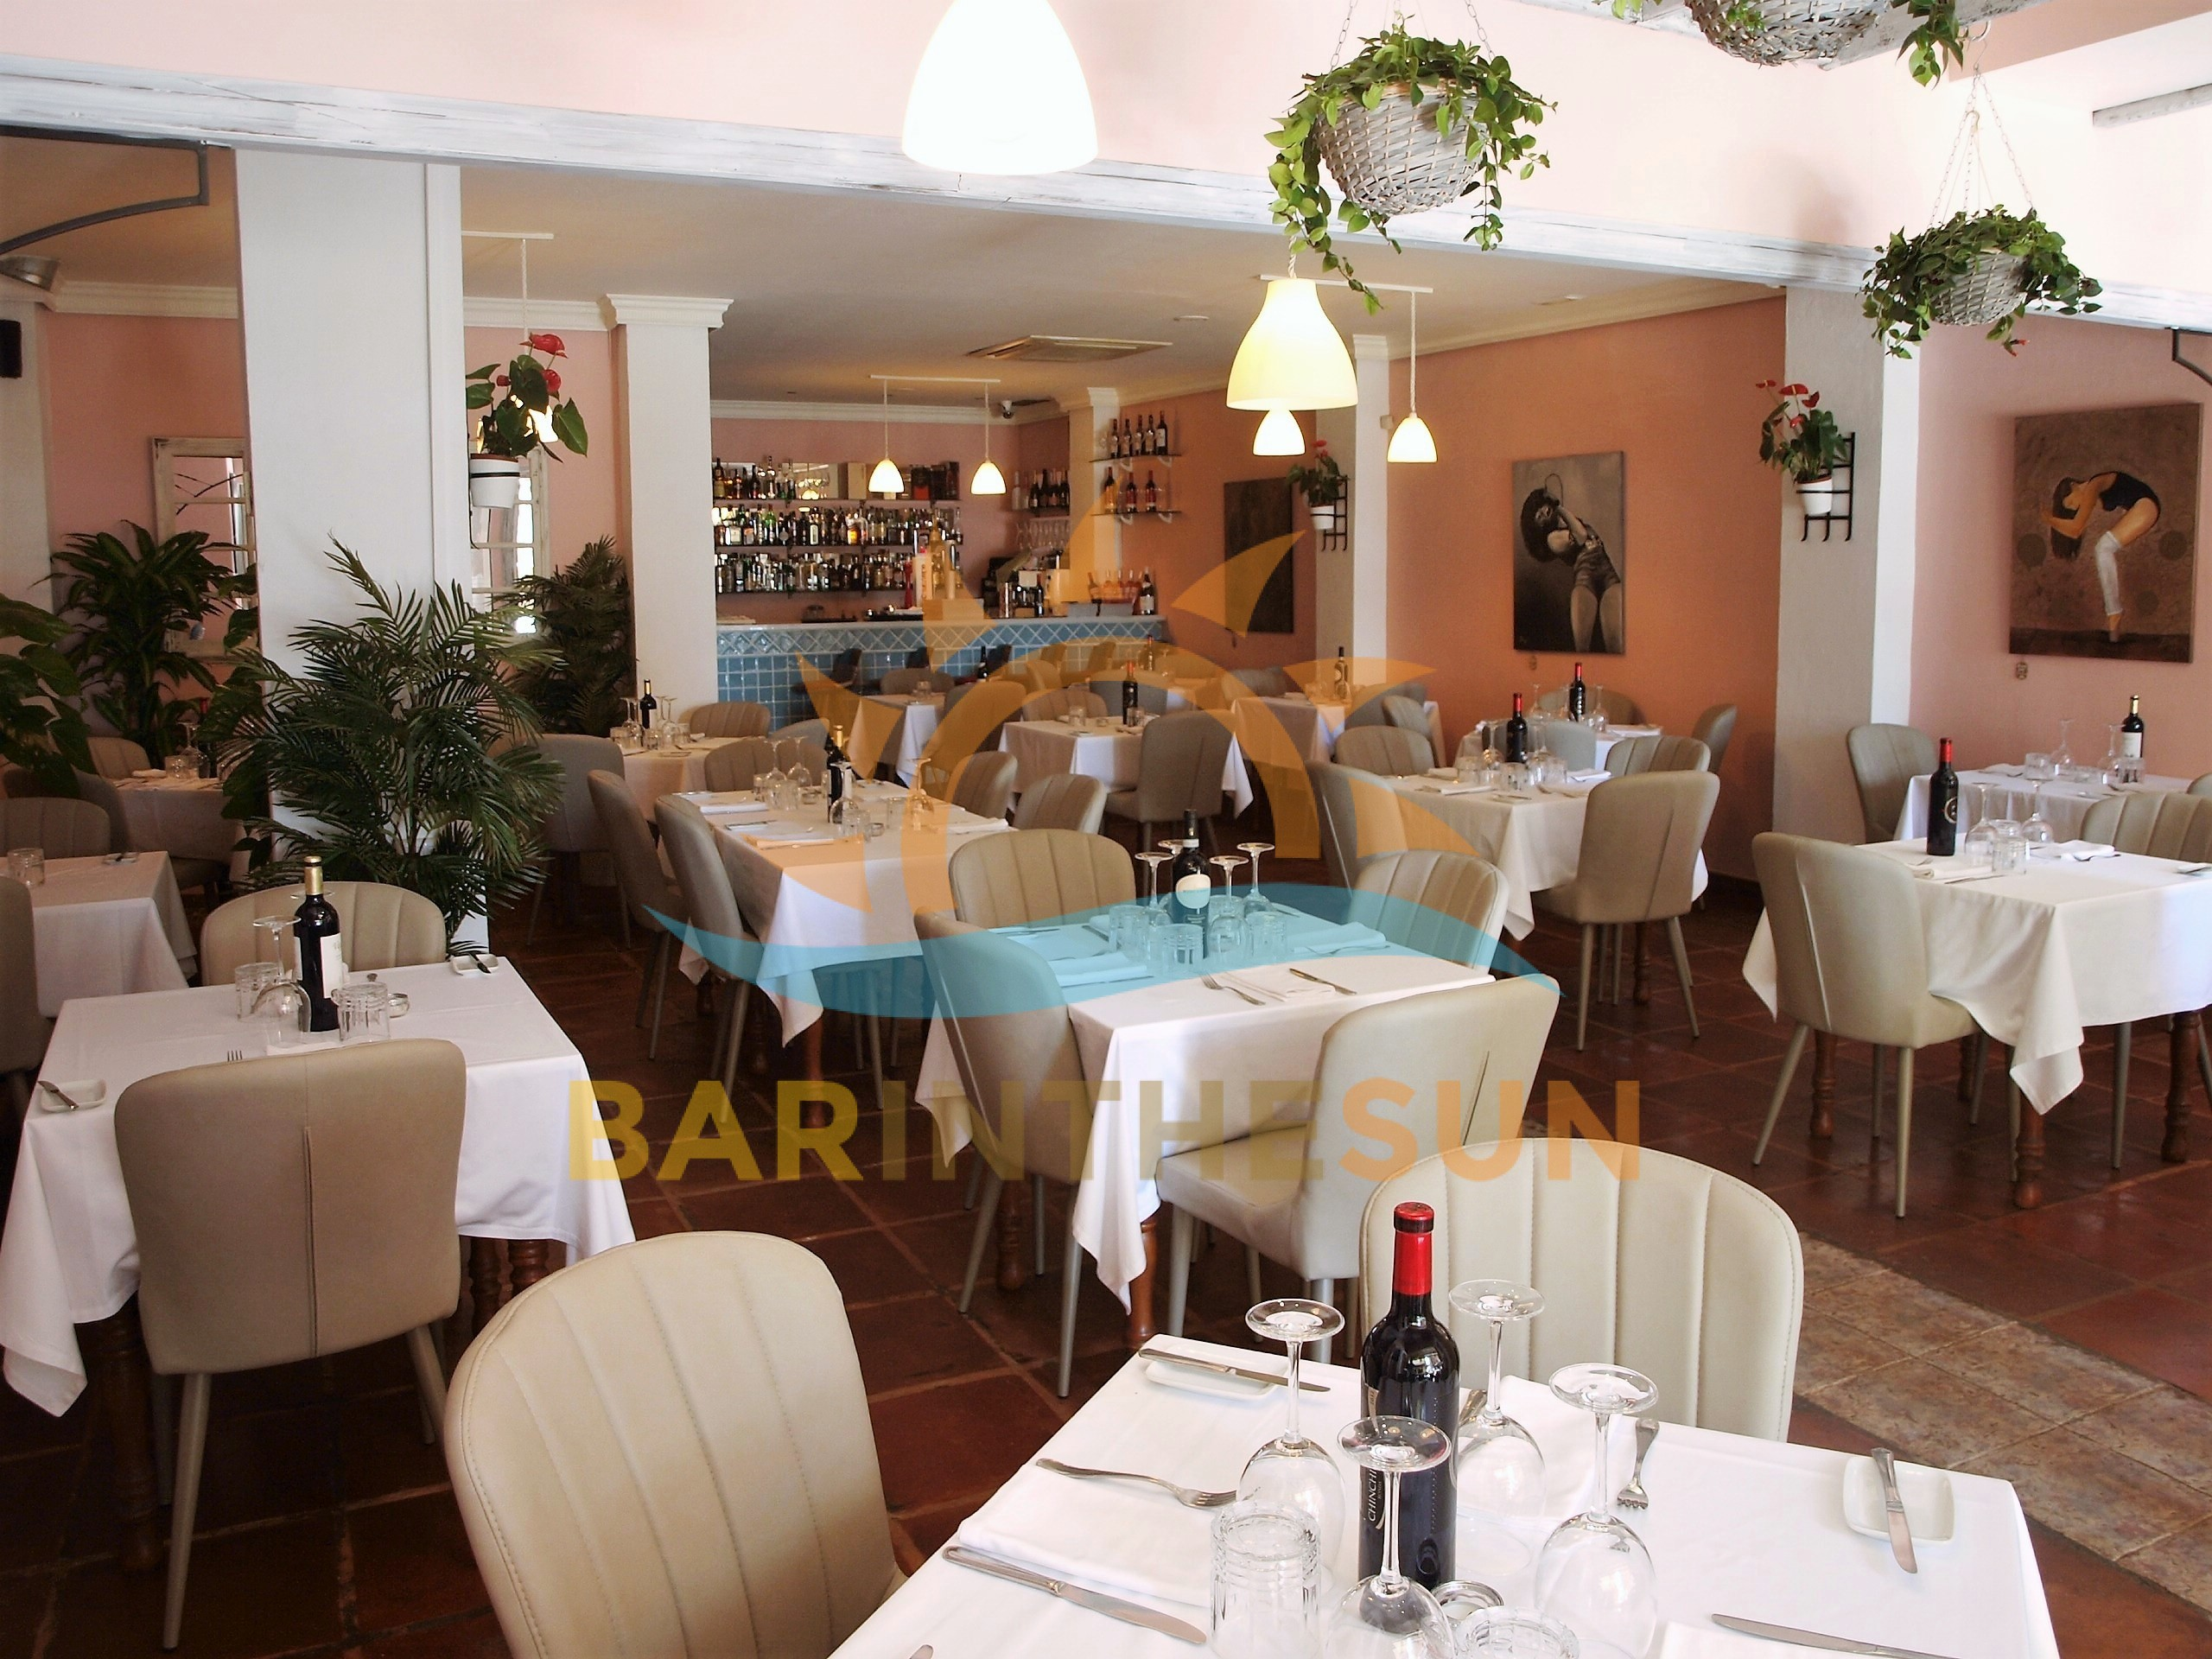 Bar Restaurants For Sale in Fuengirola Costa, Businesses For Sale in Spain